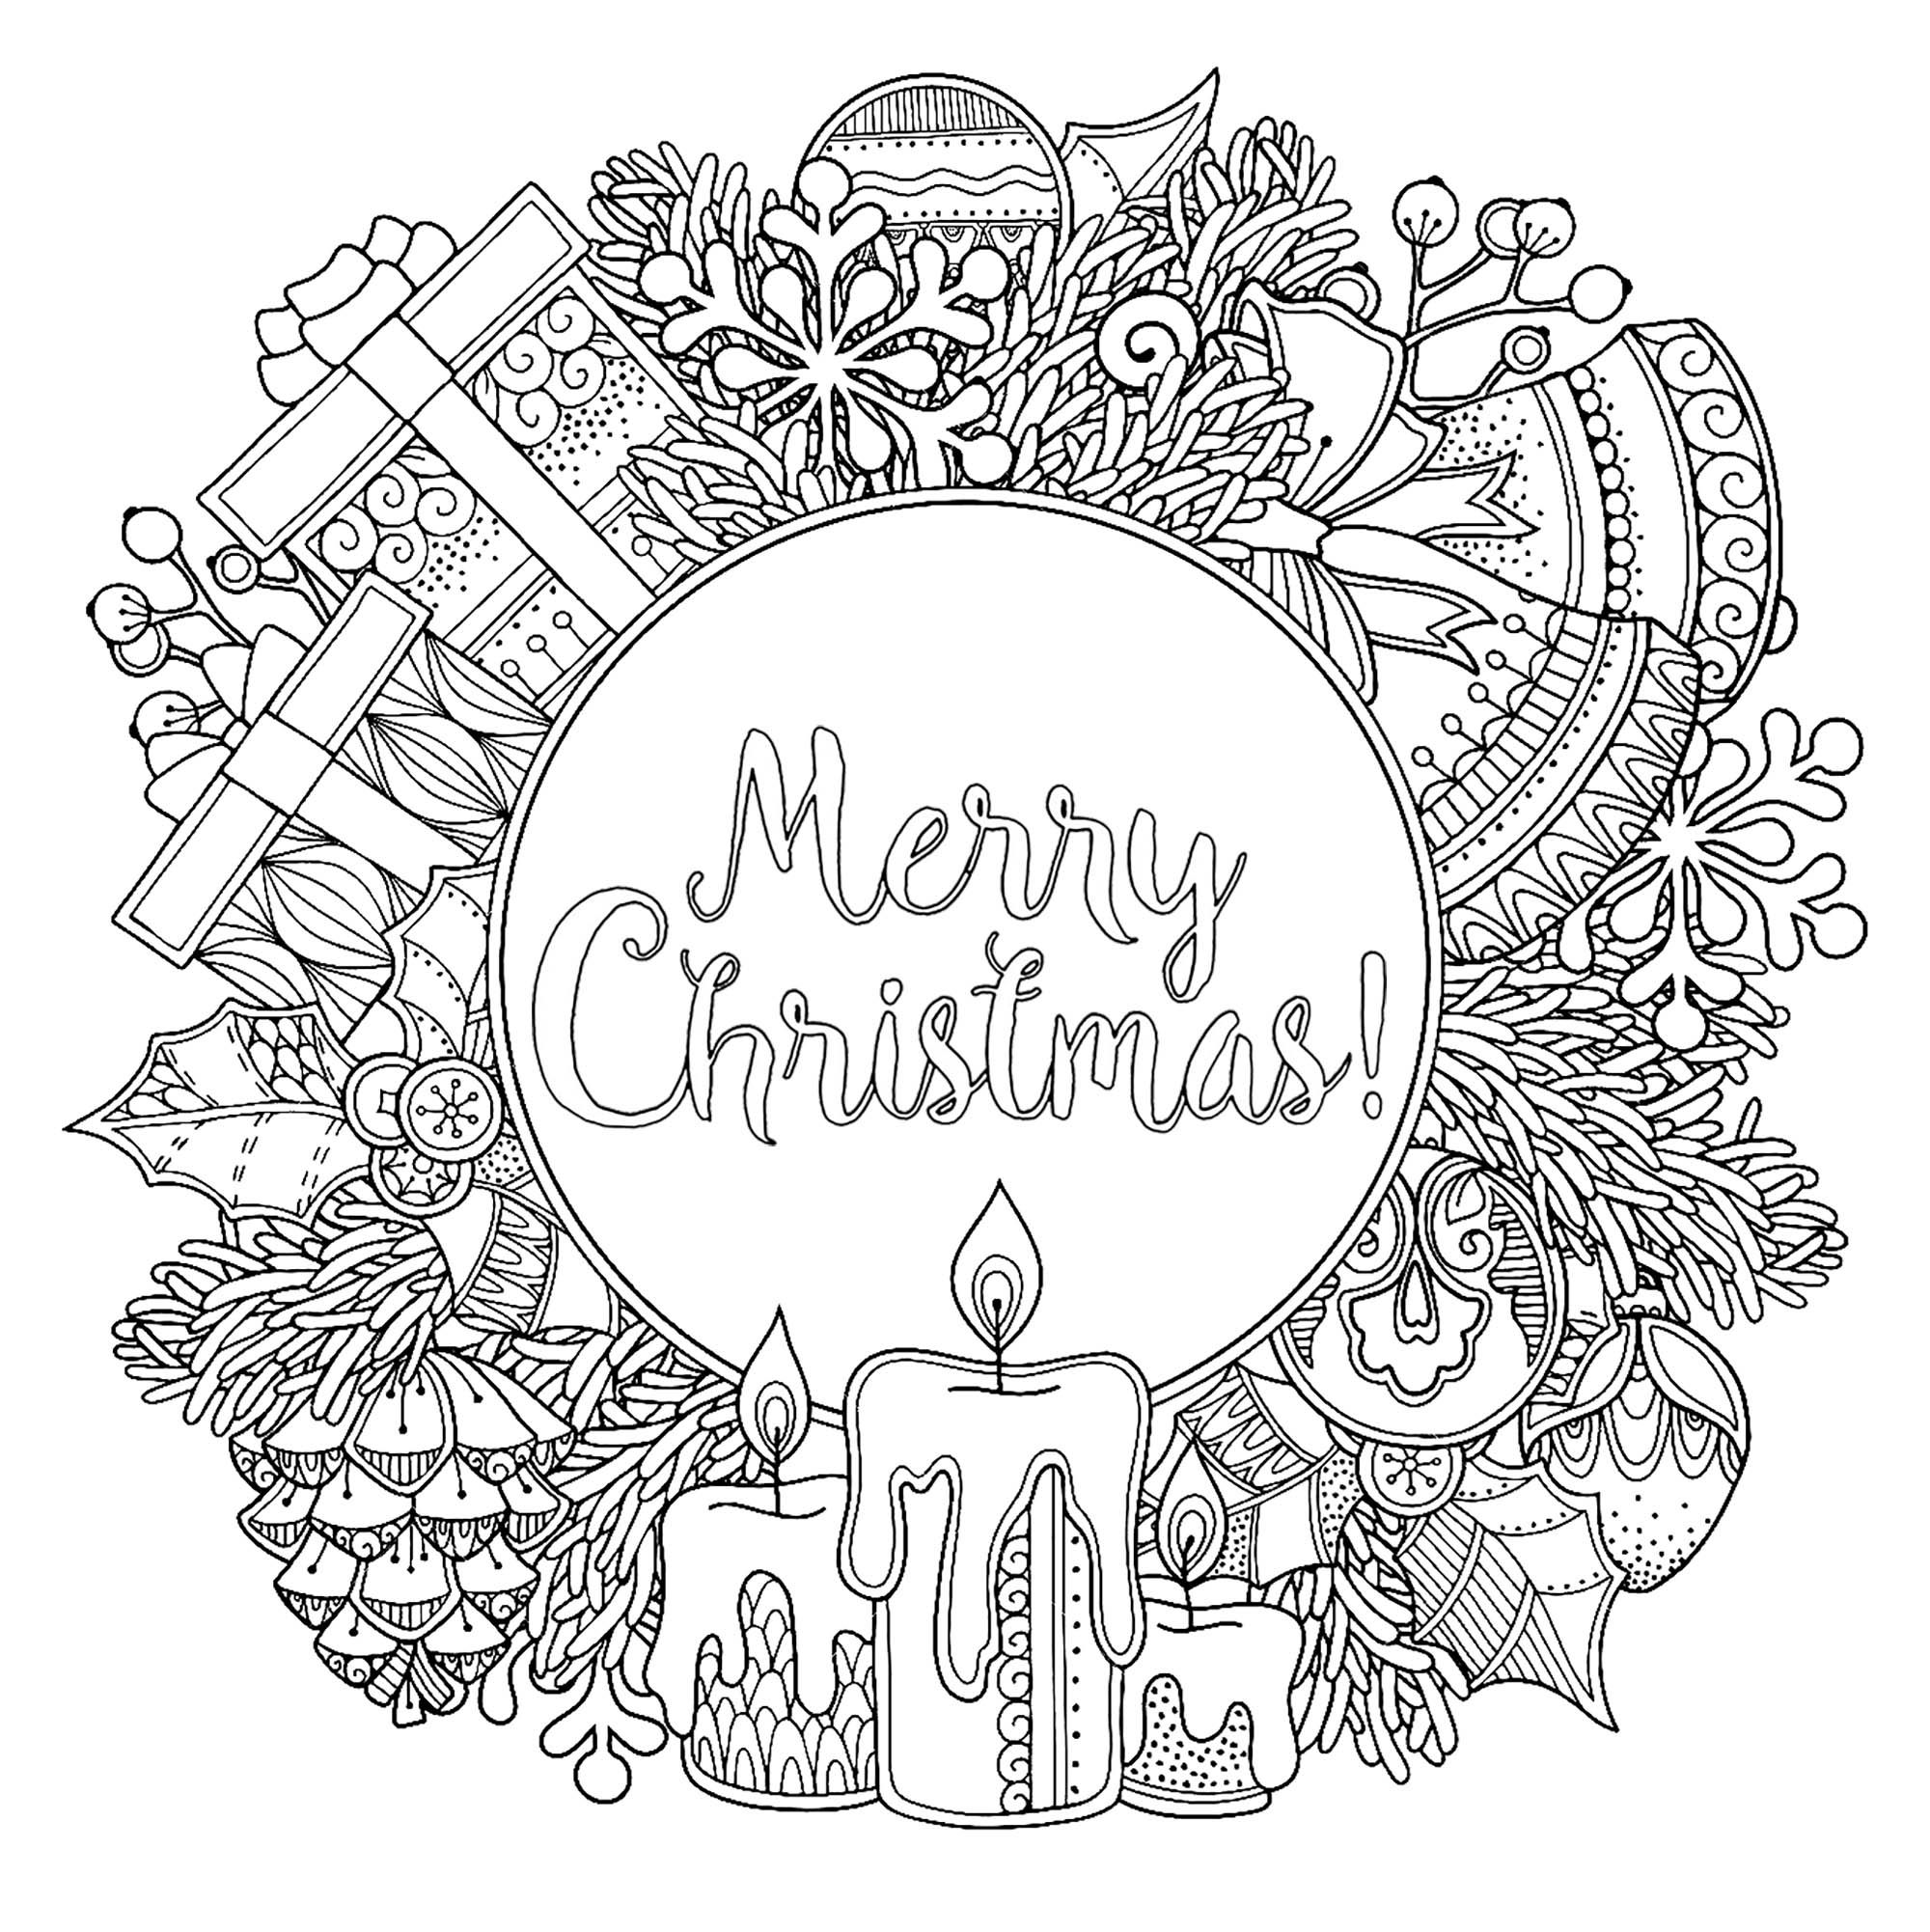 Christmas round frame in doodle style with the text Merry